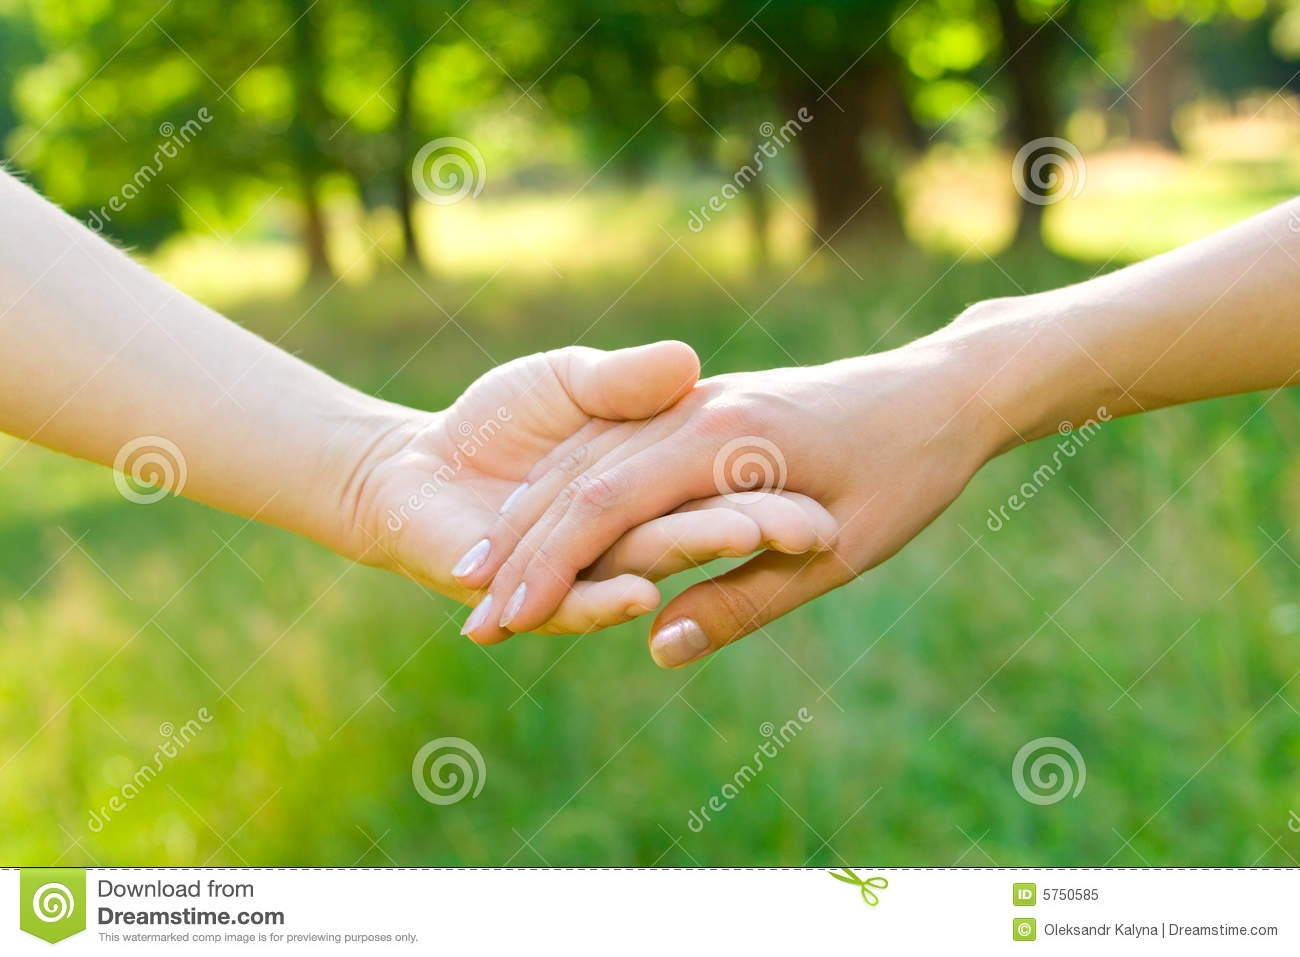 Best-images-of-love-with-friendship-Love-And-Friendship-Concept-Hands-Royalty-Free-Stock-Photo-i-wallpaper-wp3403170